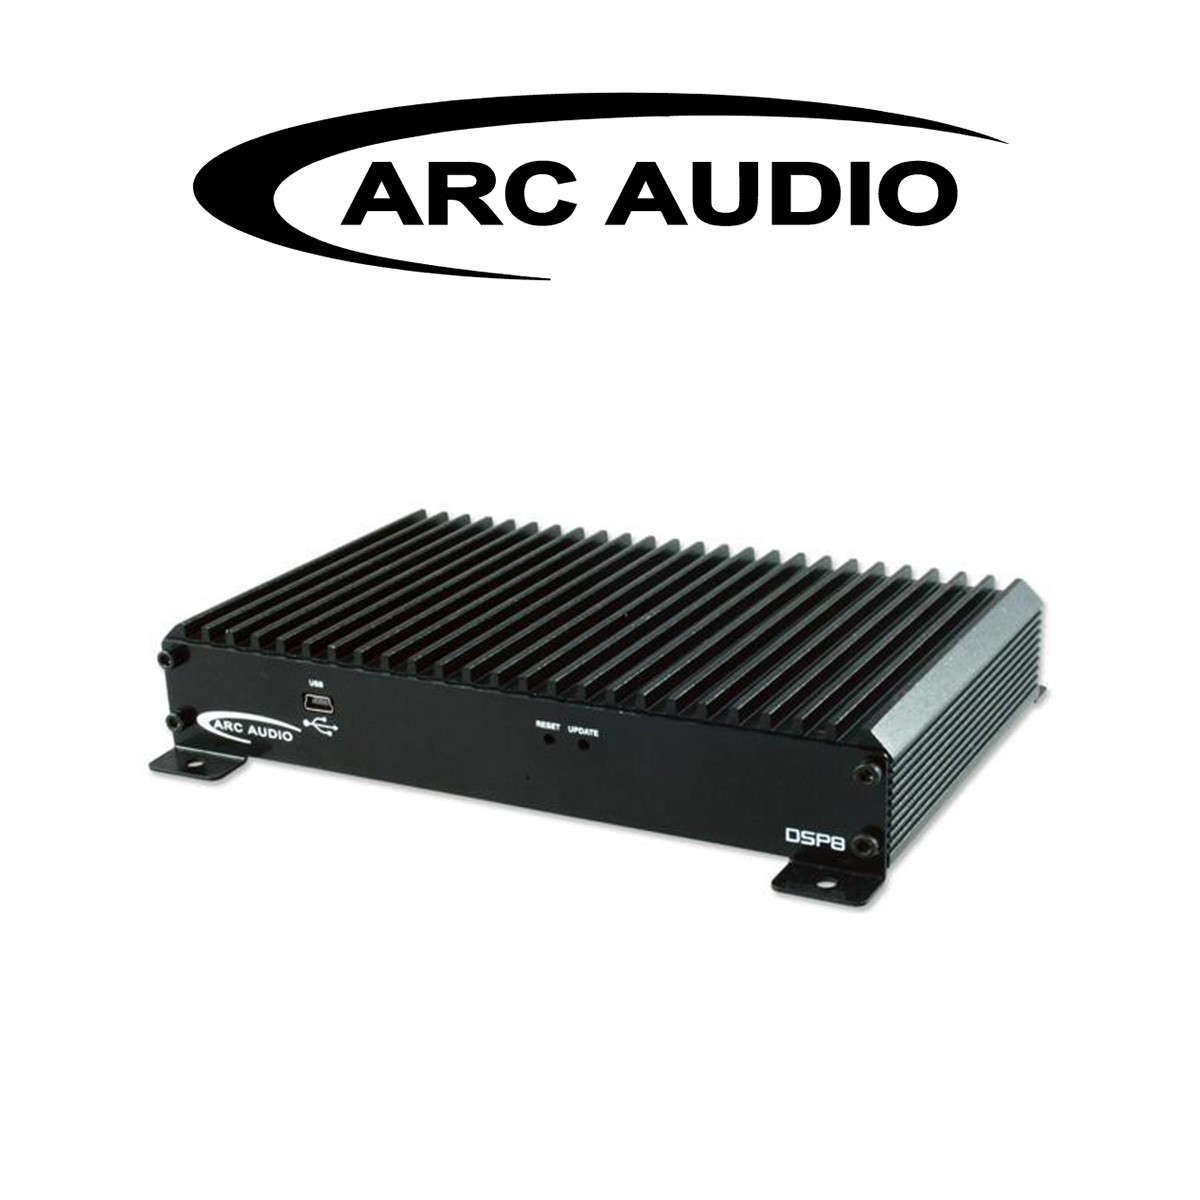 ARC AUDIO DSP 8 - PROCESSOR 8 CHANNEL